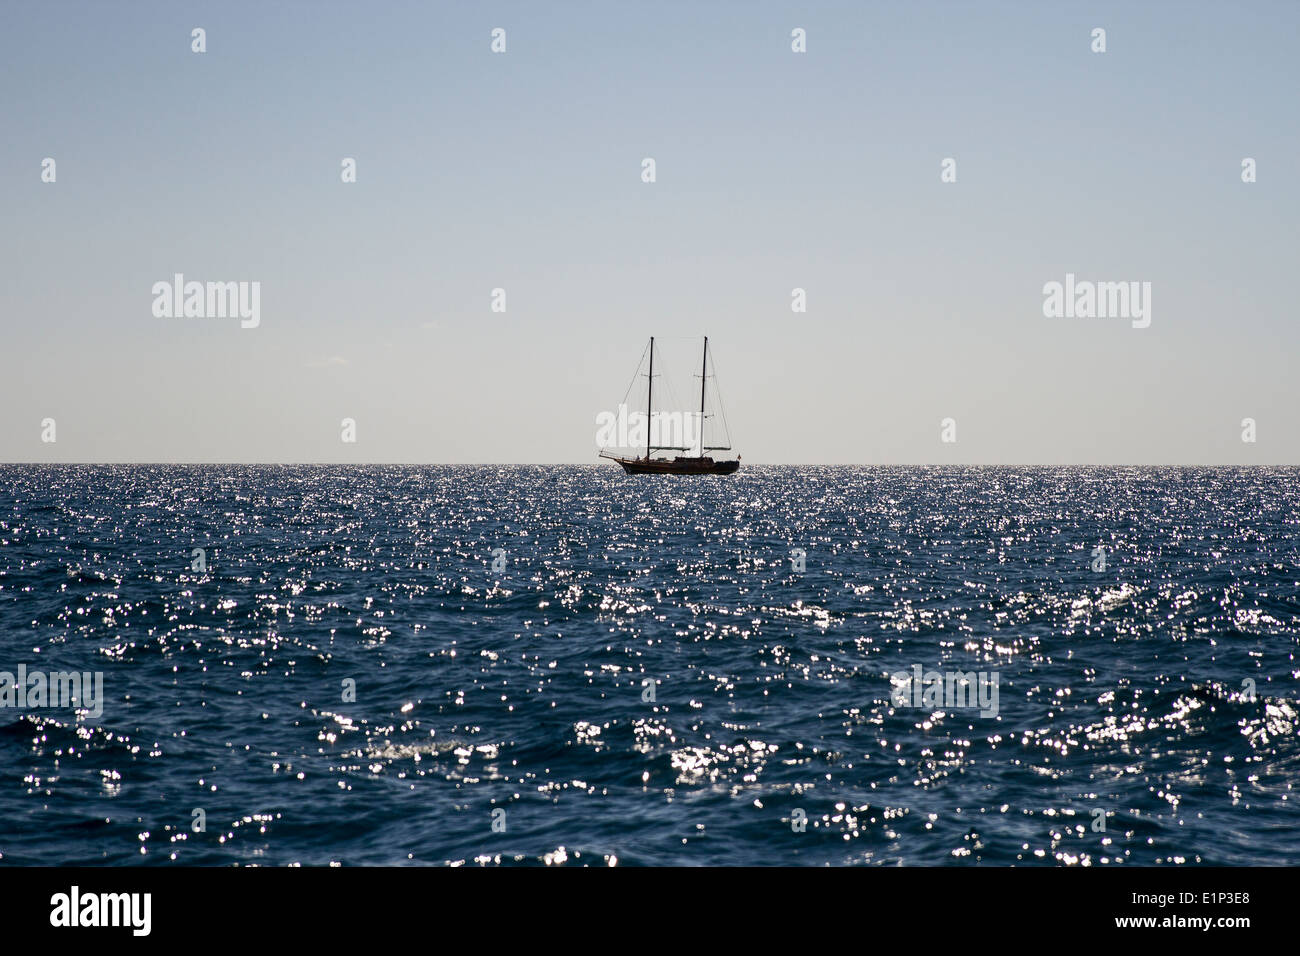 Sail boat on the Horizon - Stock Image